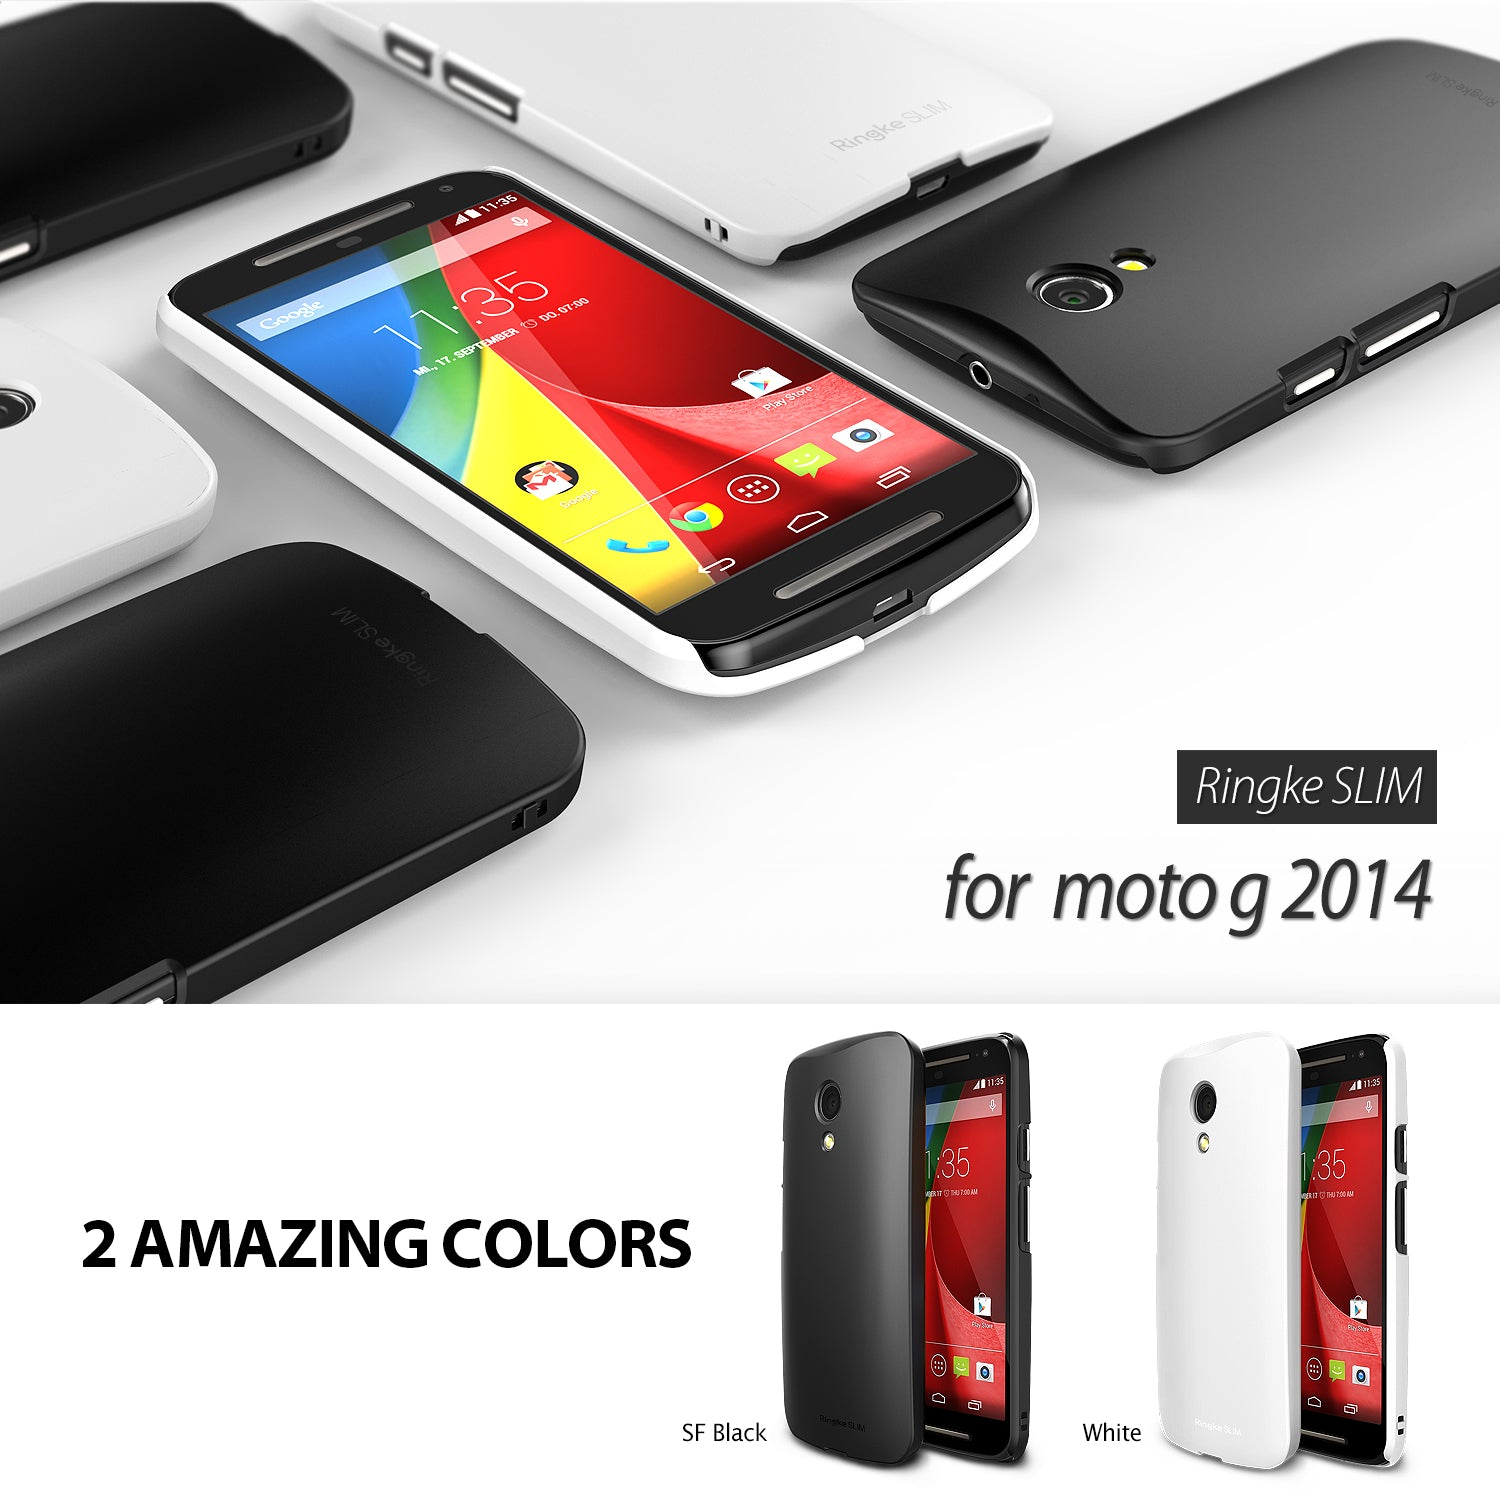 ringke slim thin lightweight hard pc back case cover for moto g 2014 2nd gen